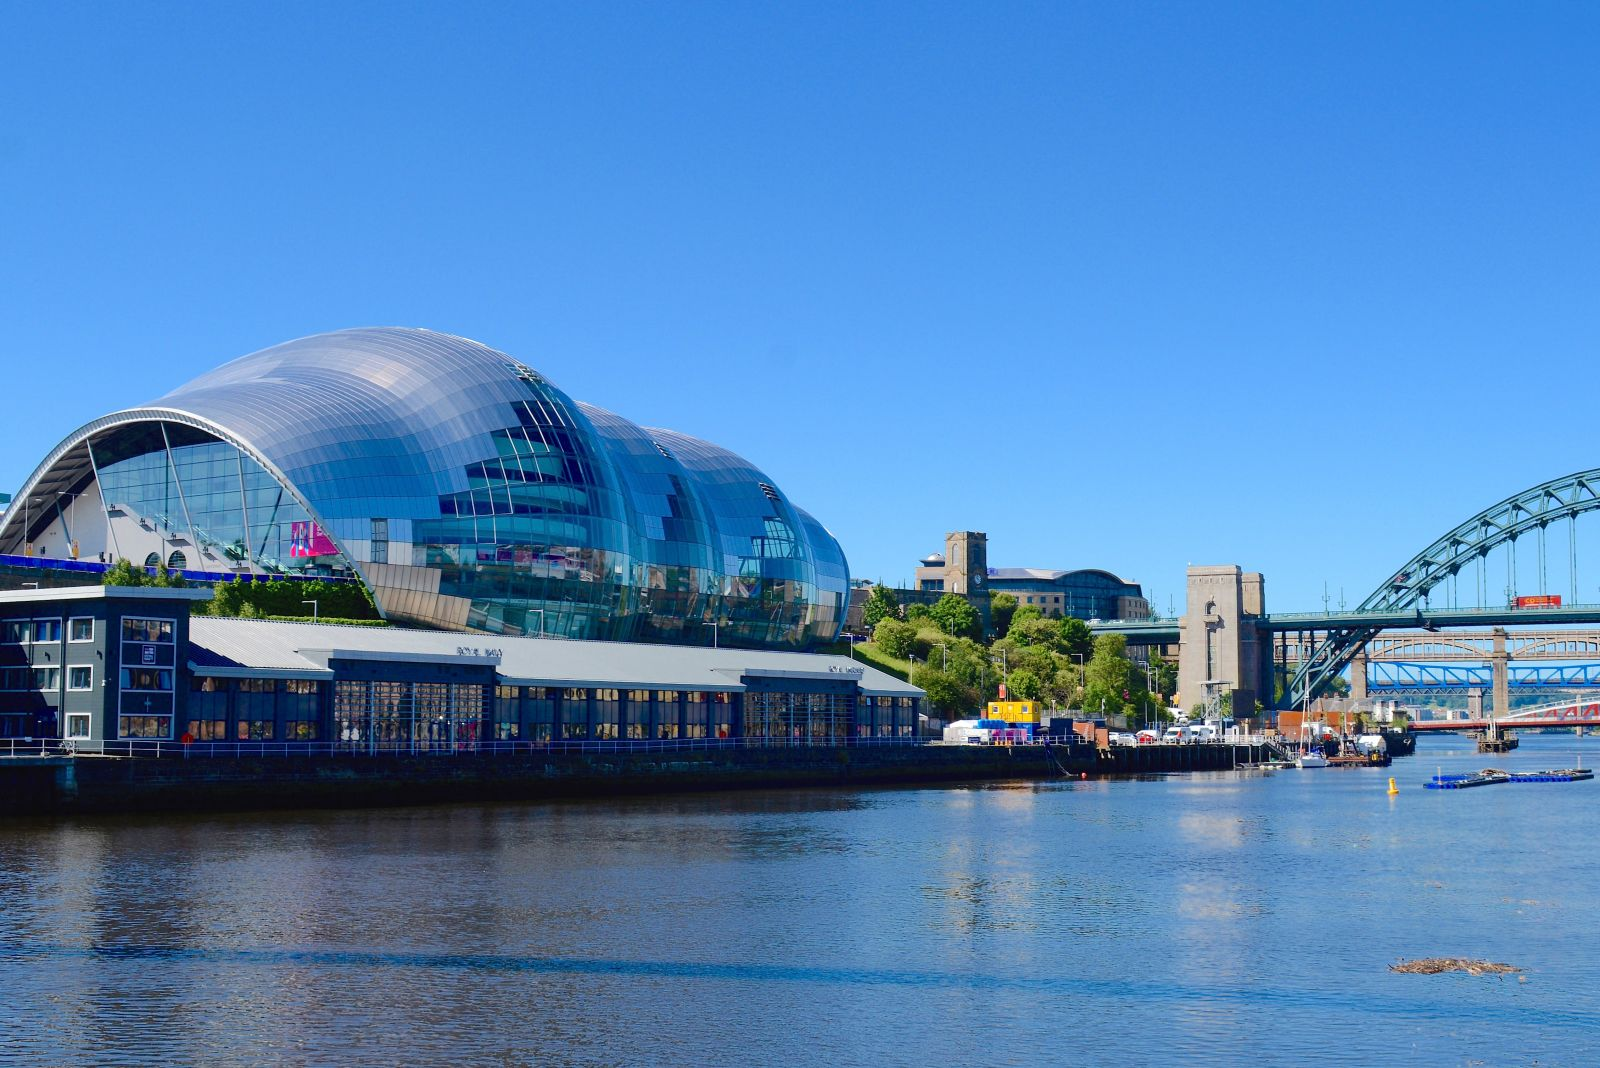 sage-gateshead-newcastle